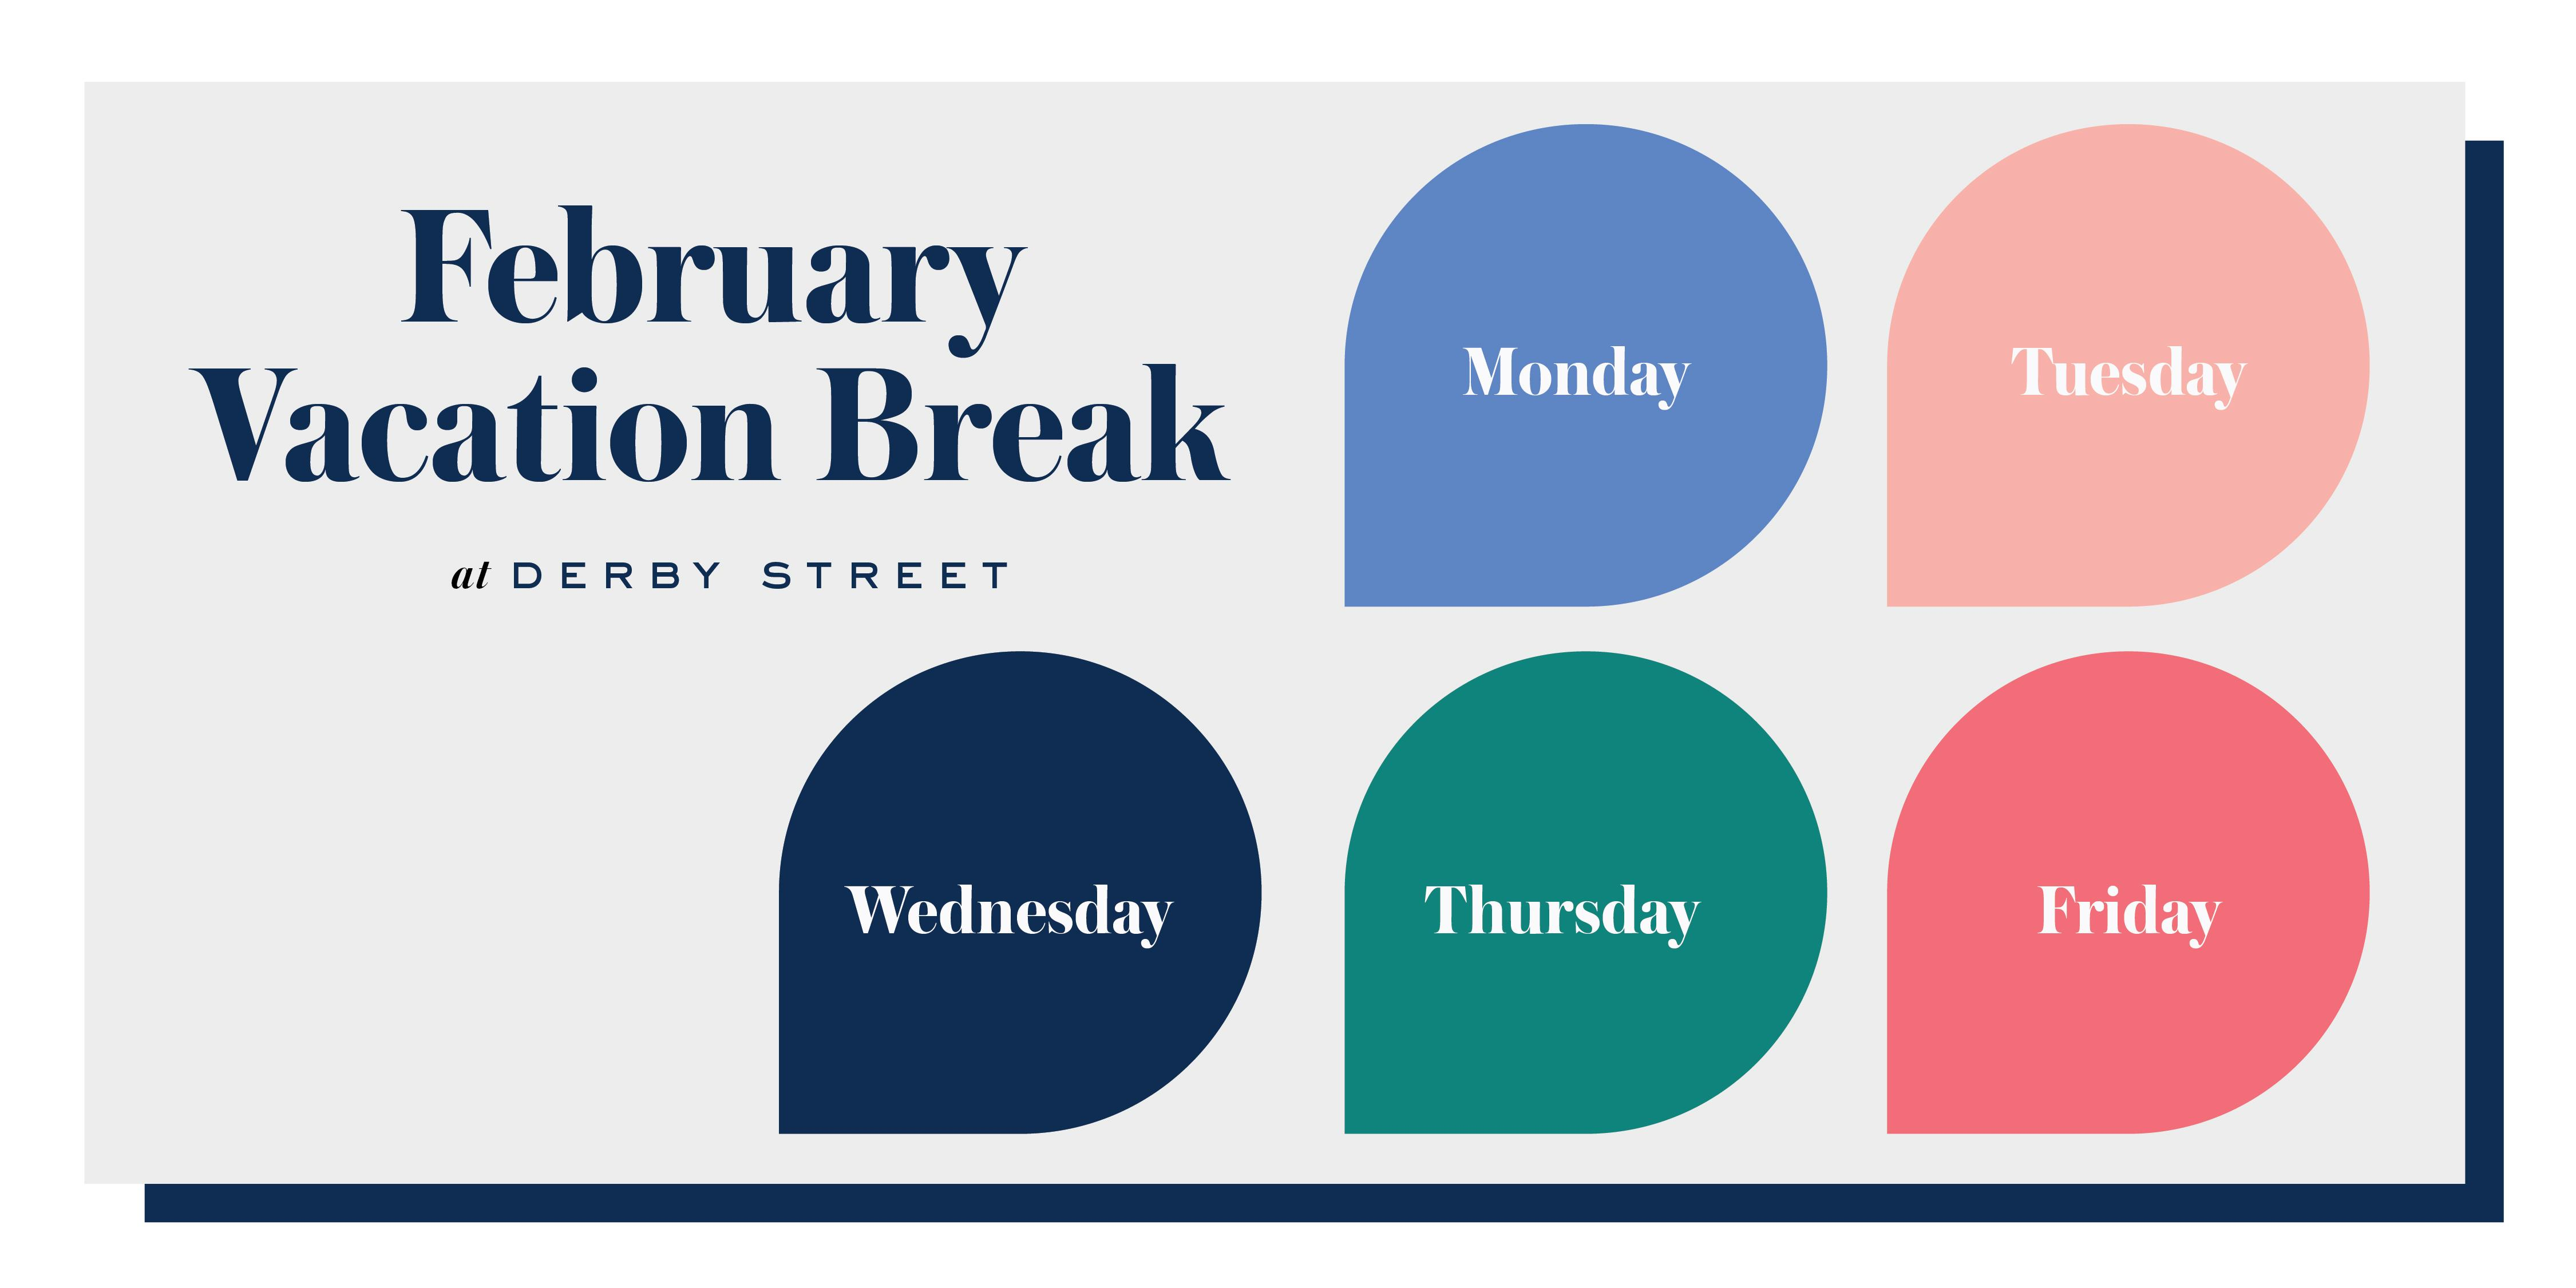 February Break at Derby Street